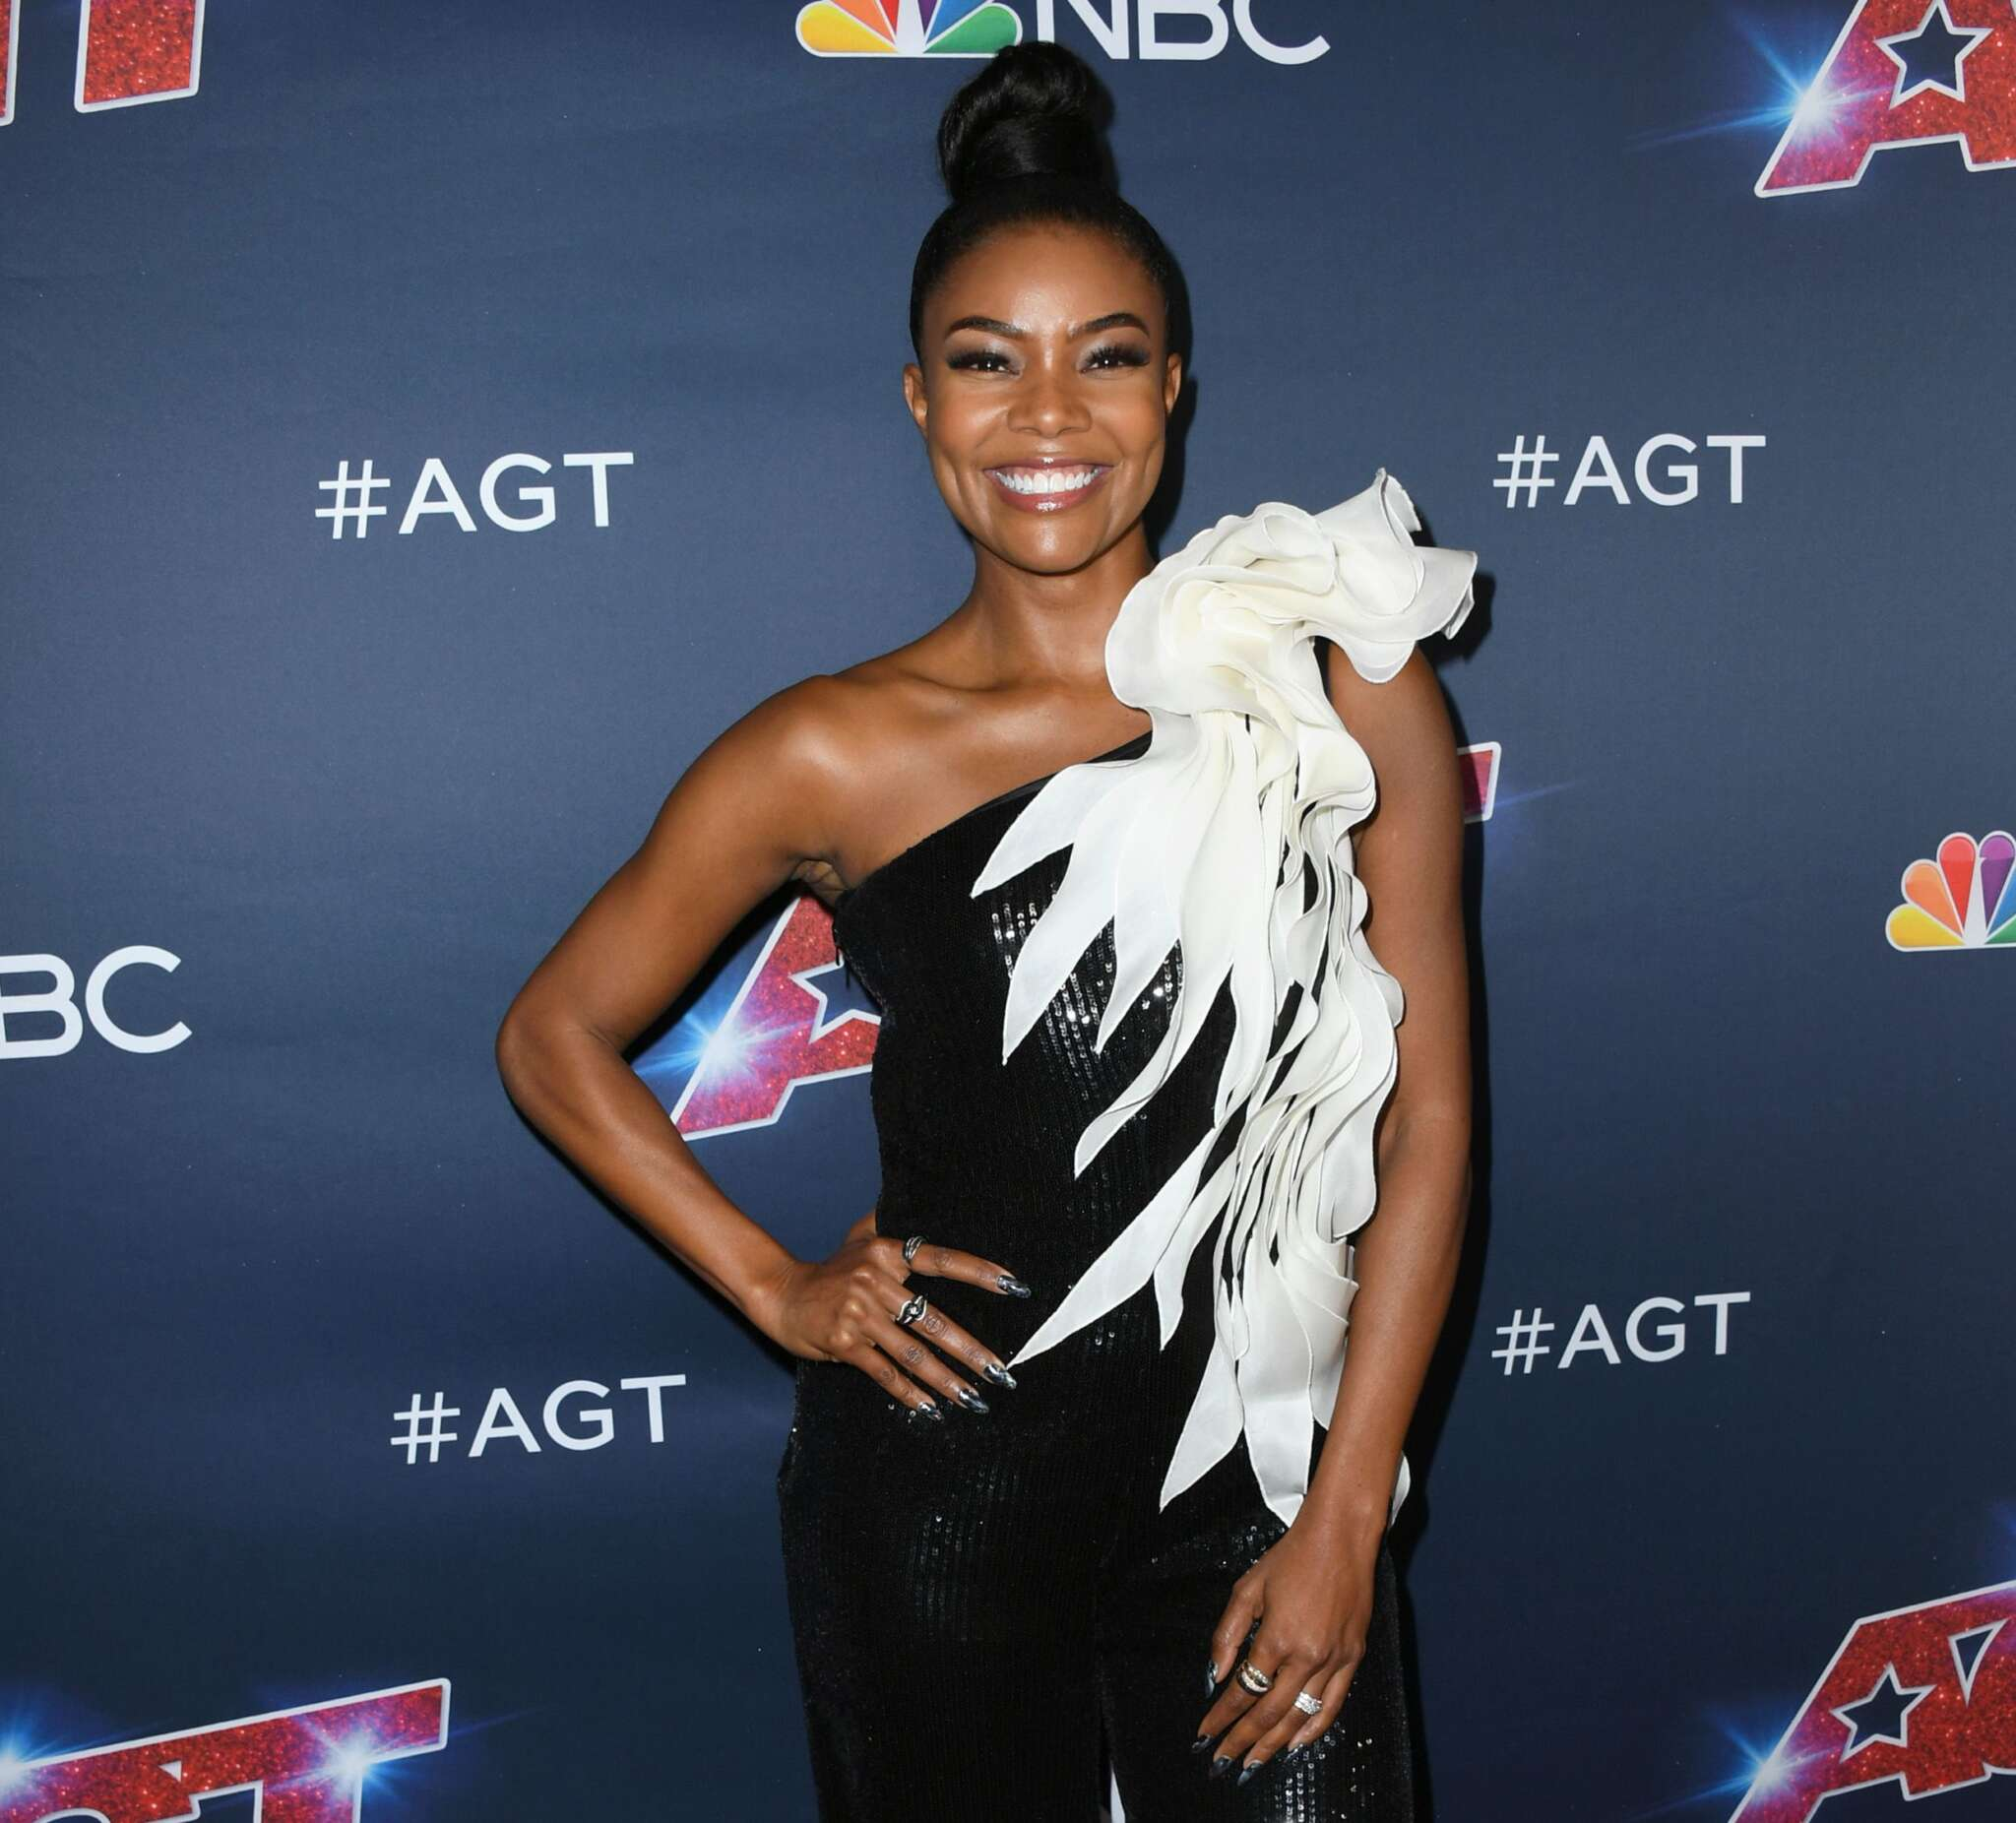 gabrielle-union-shows-fans-who-is-the-embodiment-of-melanin-magic